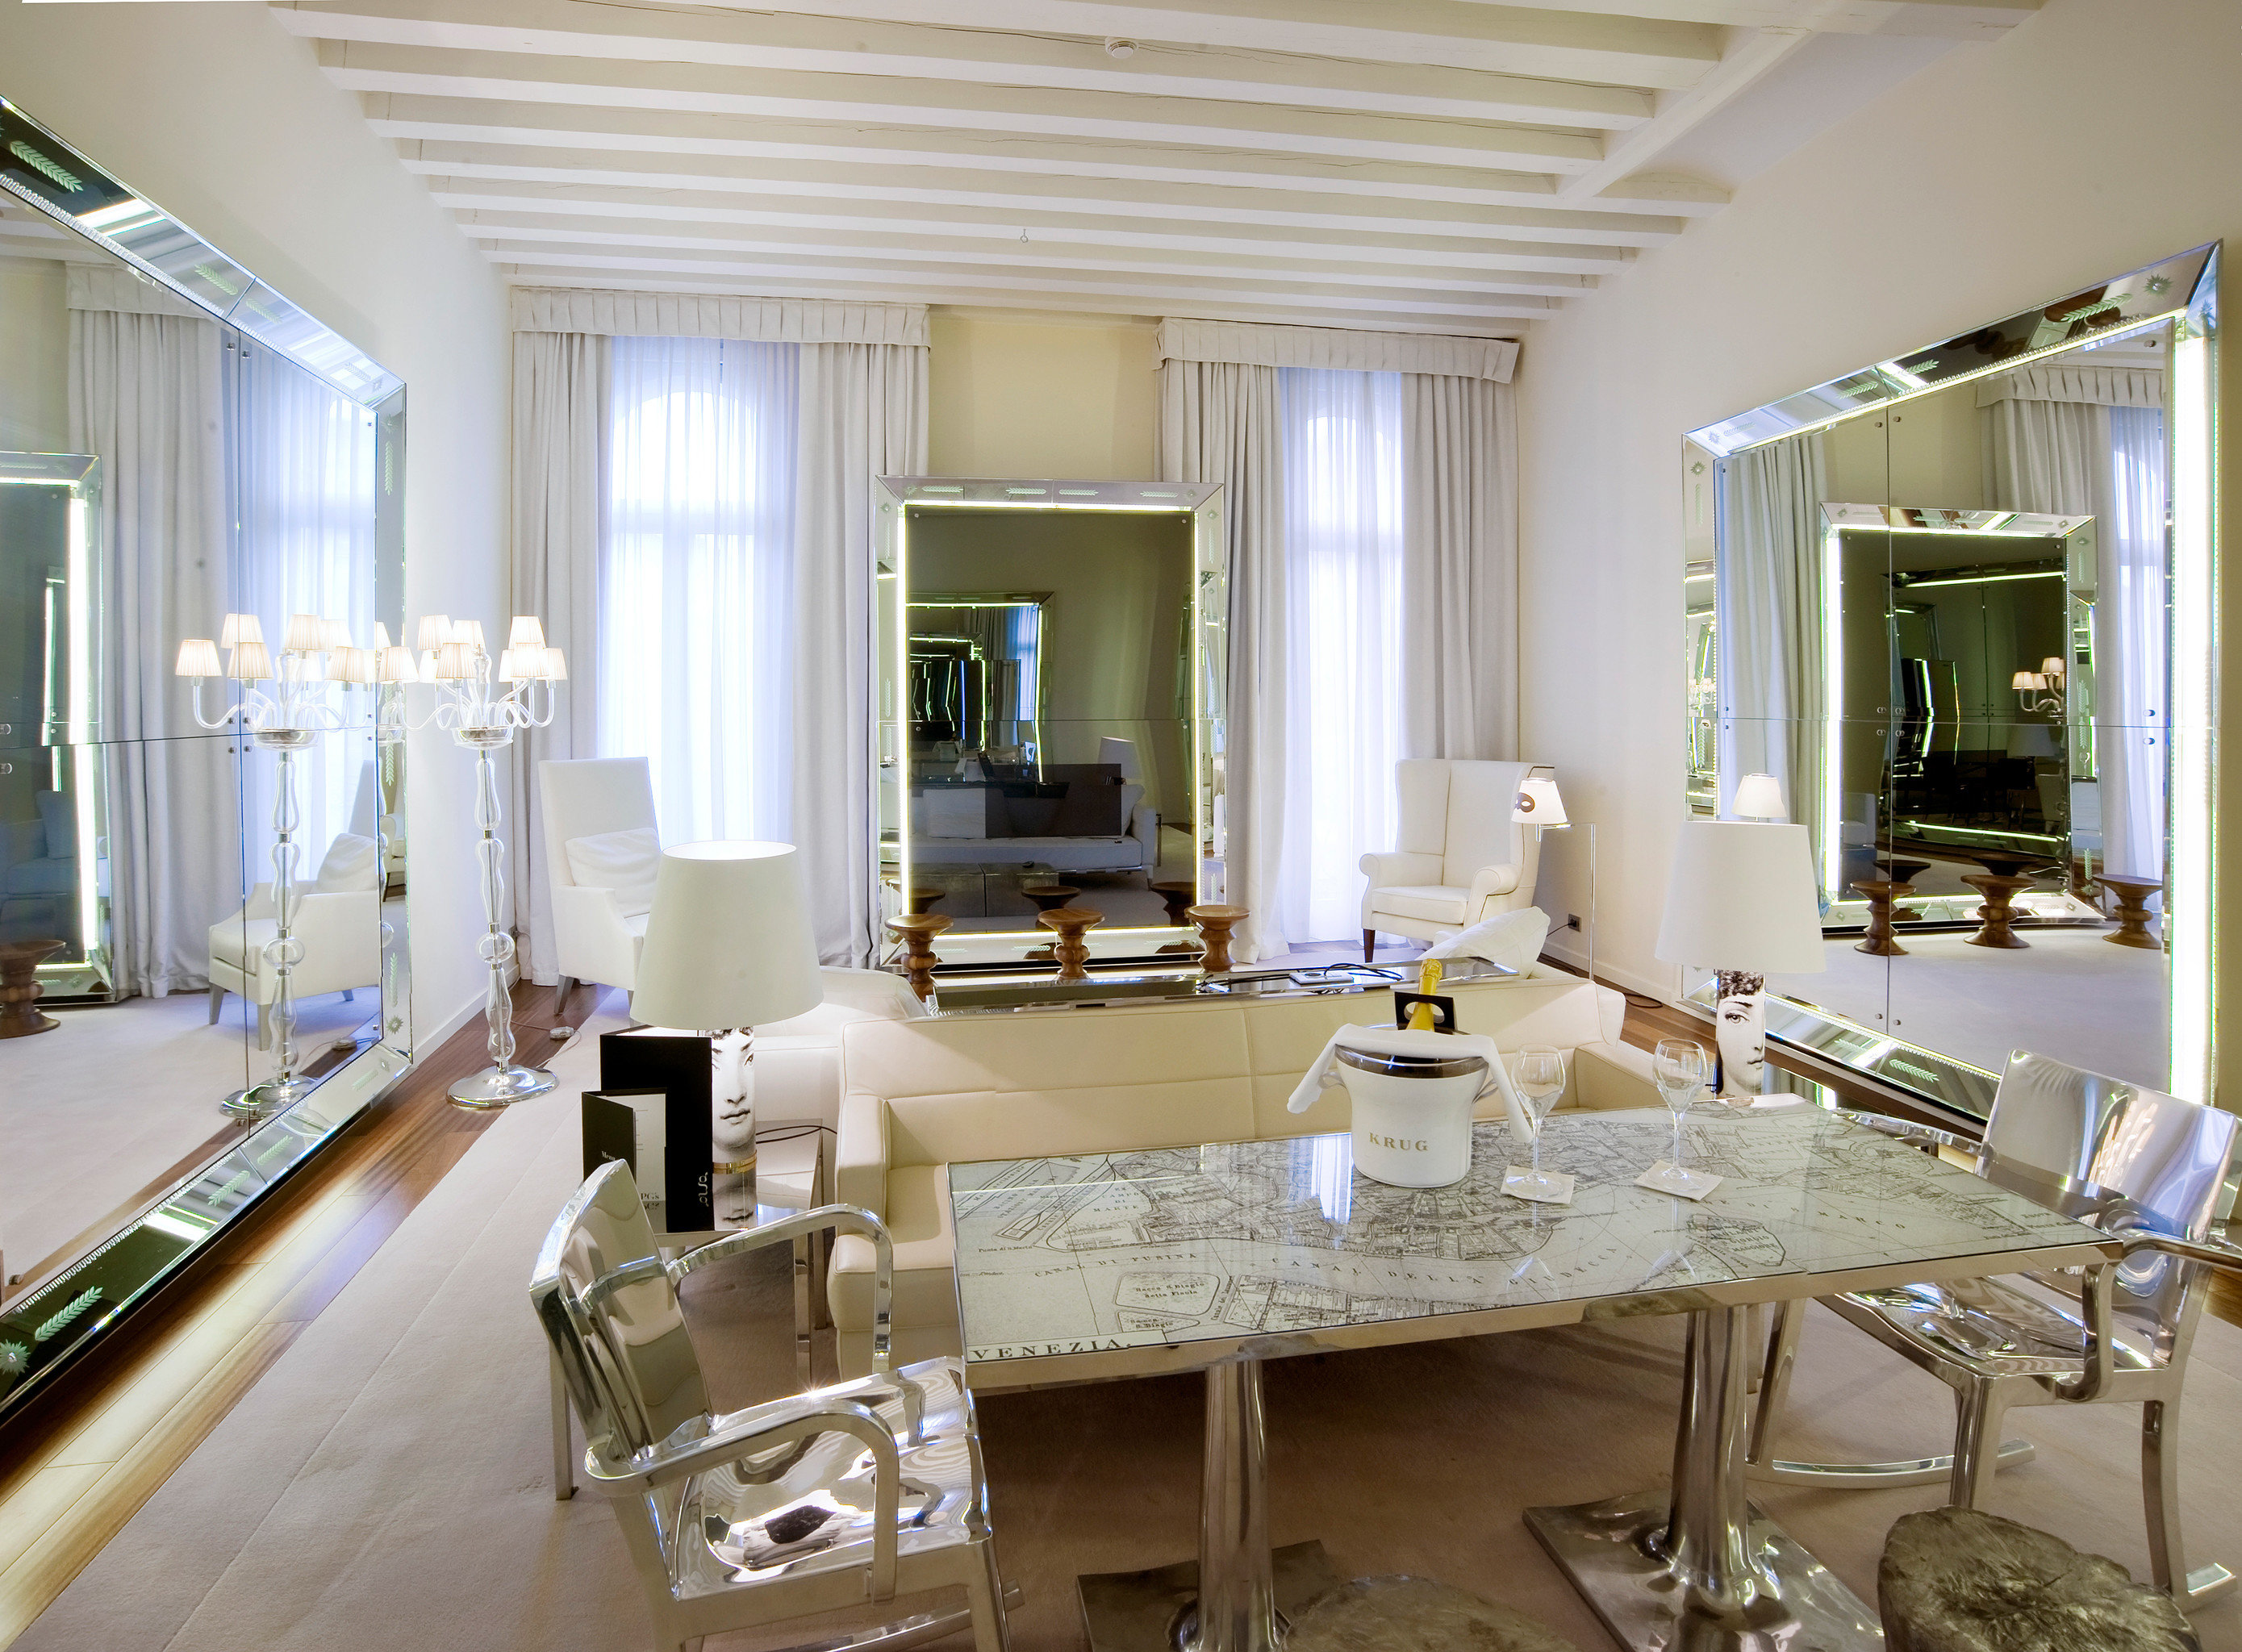 City Hip Hotels Italy Living Luxury Luxury Travel Modern Suite Venice window indoor floor wall dining room room property living room estate home interior design real estate ceiling condominium Kitchen Design mansion cottage Villa furniture several dining table